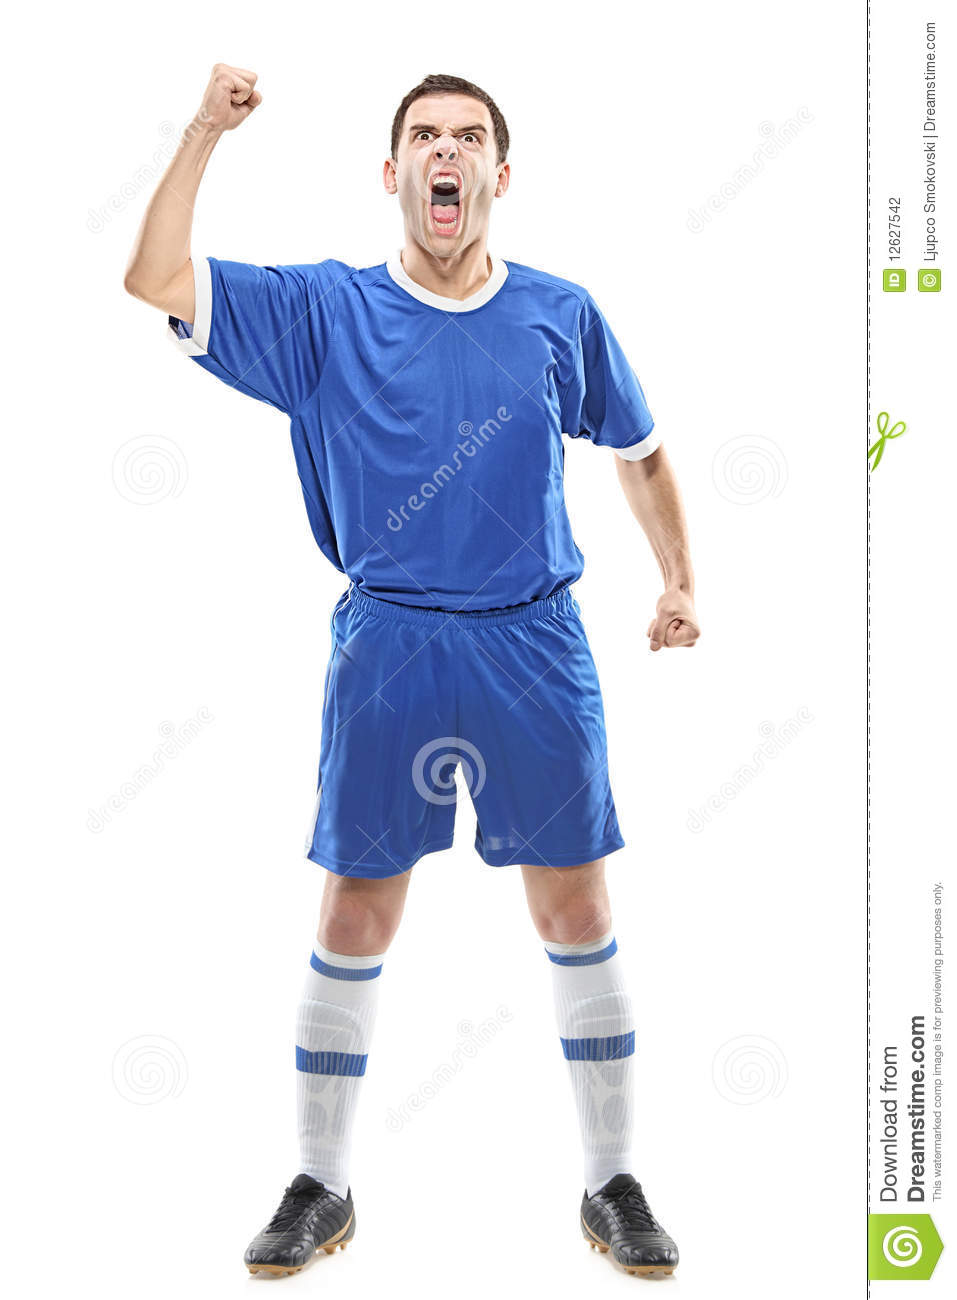 Soccer player standing and screaming isolated against white background ...